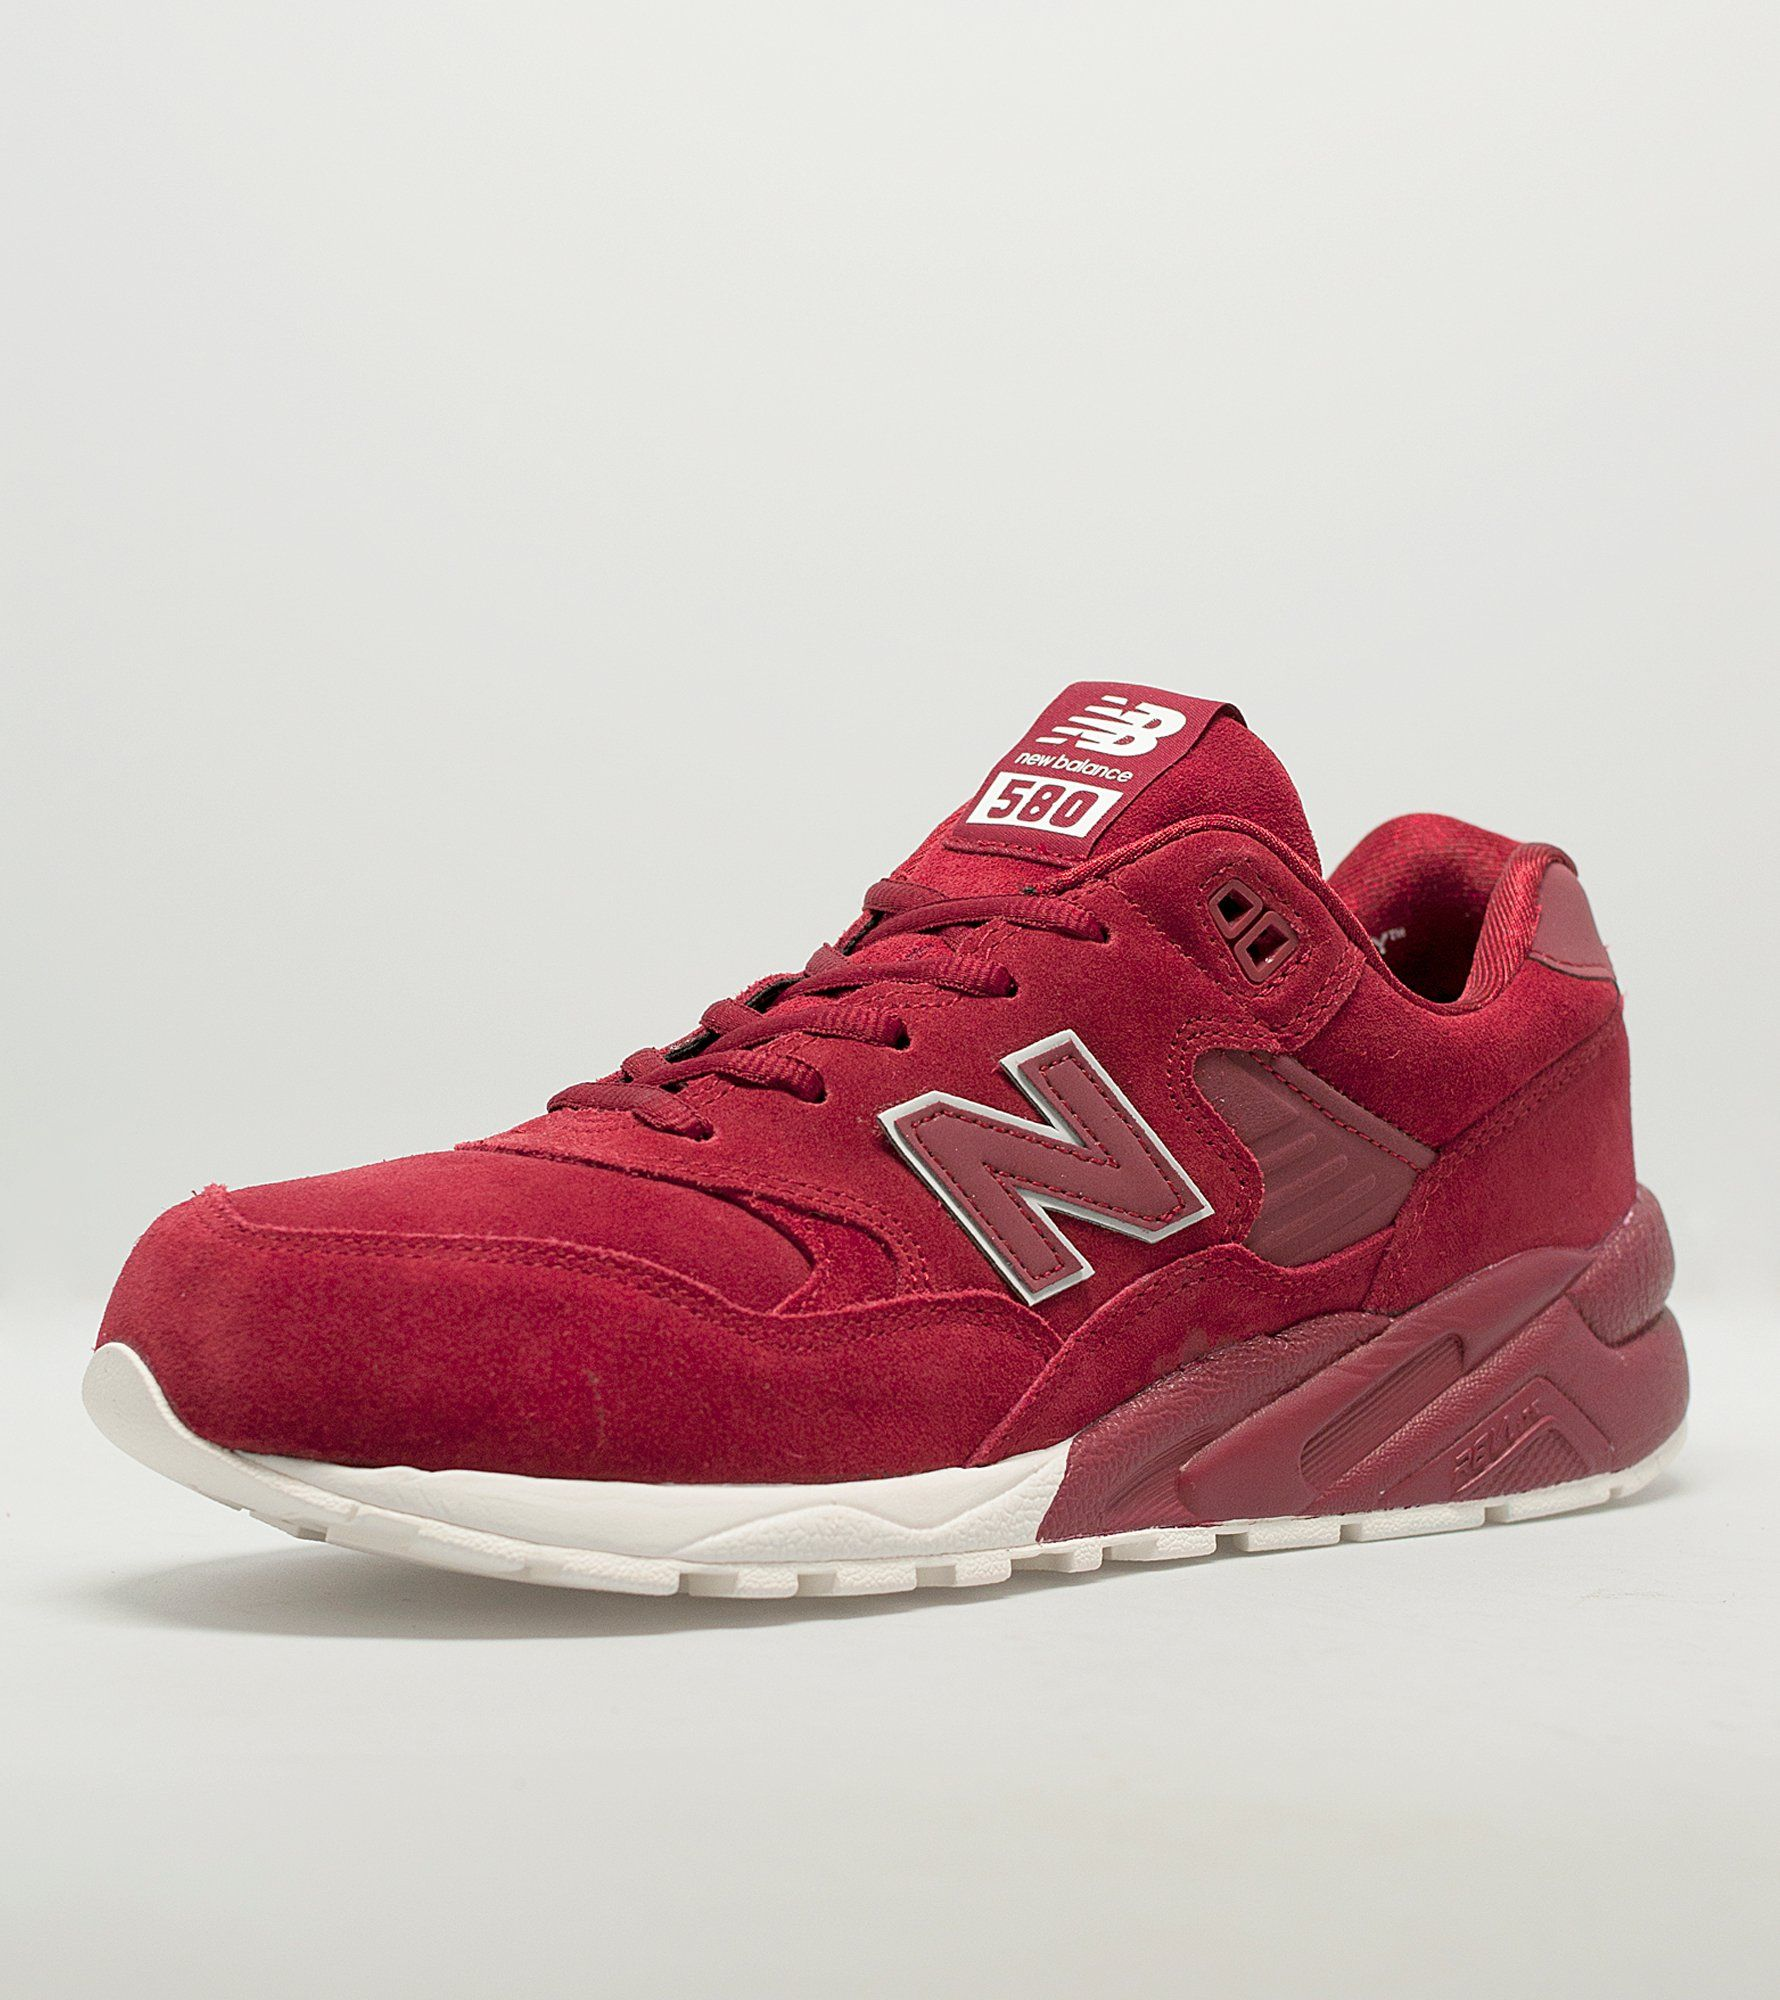 reputable site 54807 98bcb canada new balance 580 burgundy ae301 8b089